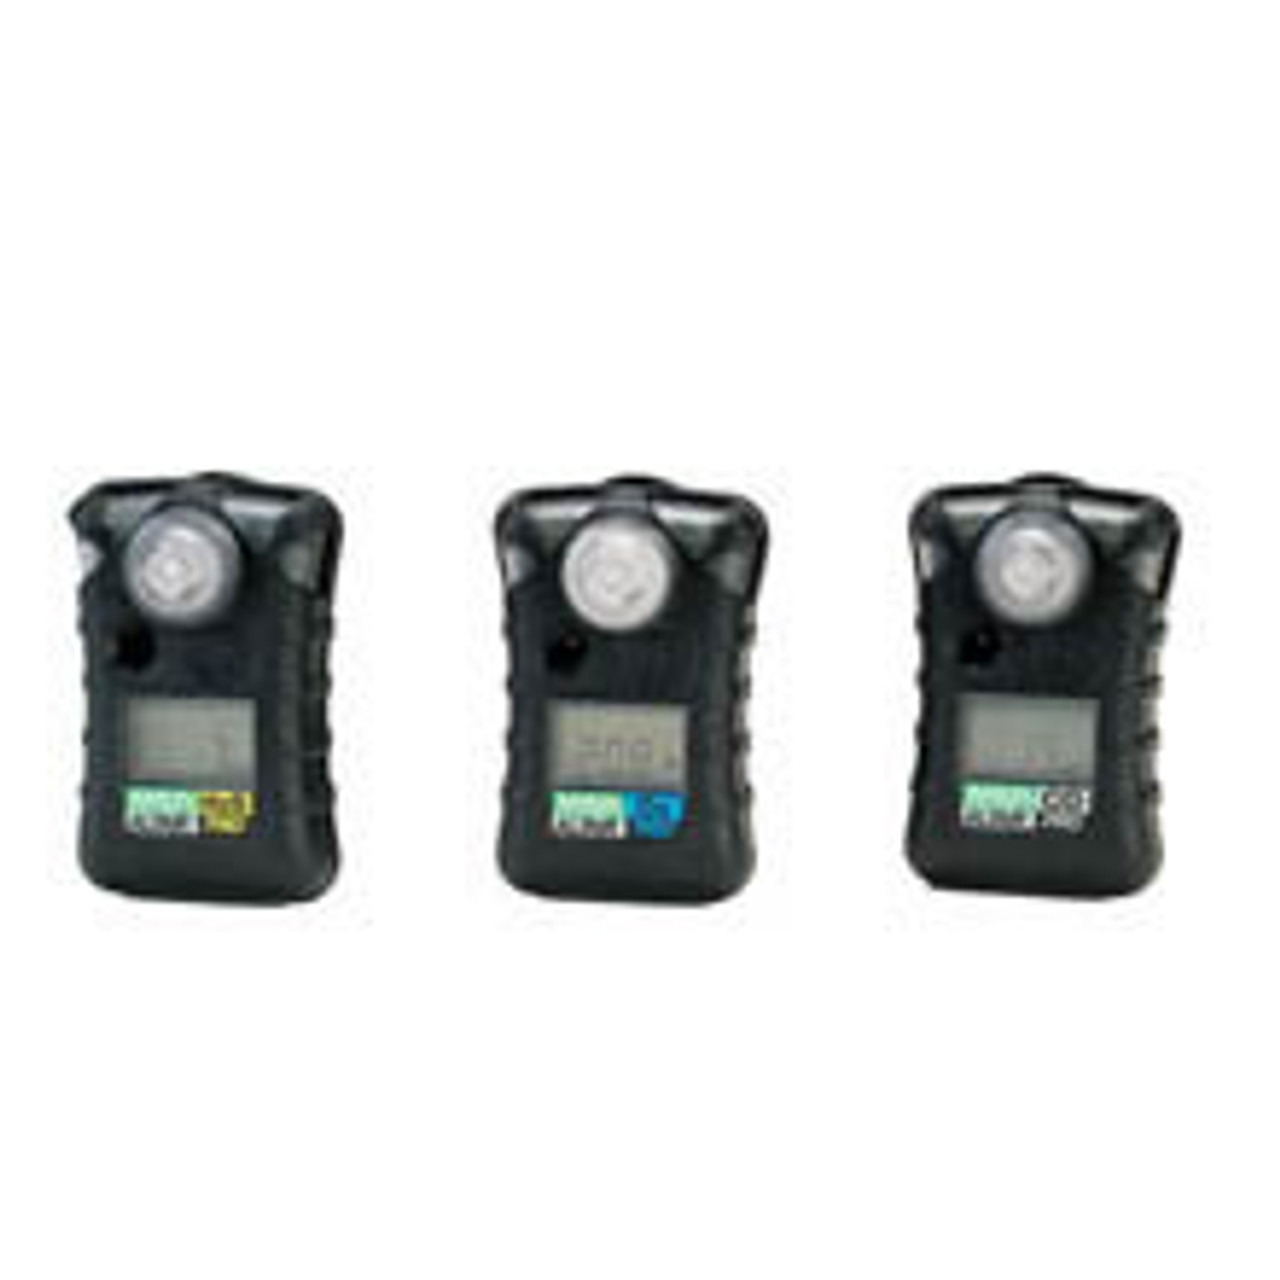 Altair Pro CO Fire Single-Gas Detector